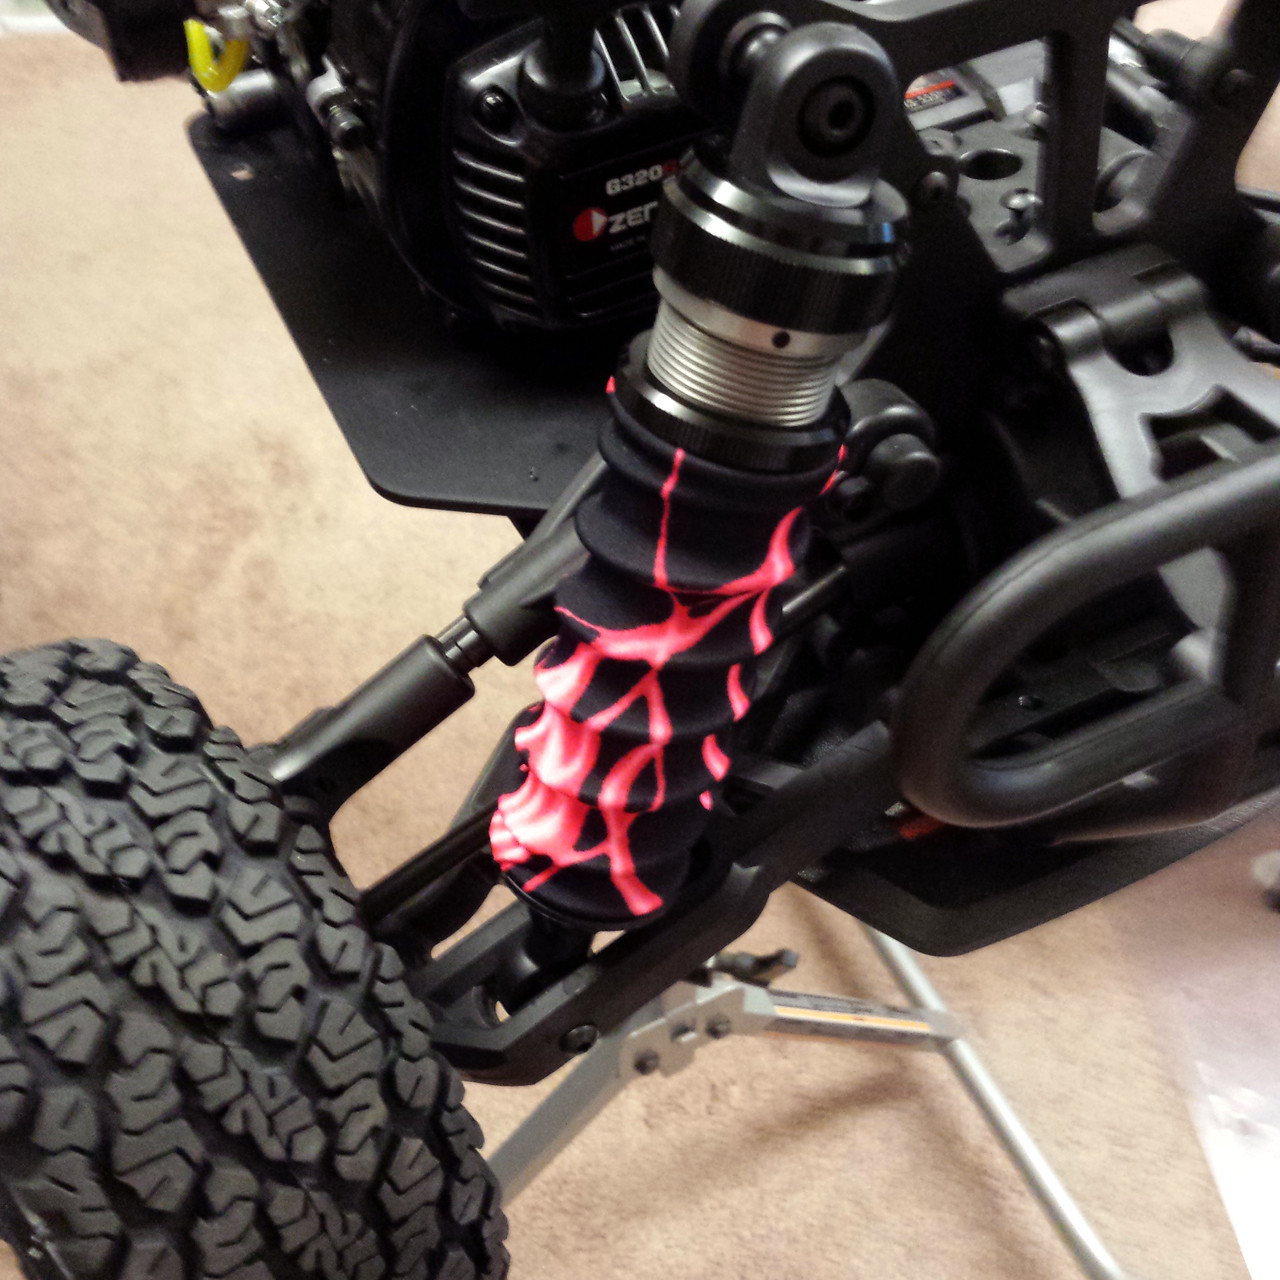 Vekta 5 sporting some hot Lightning Red shock boots on the front end!